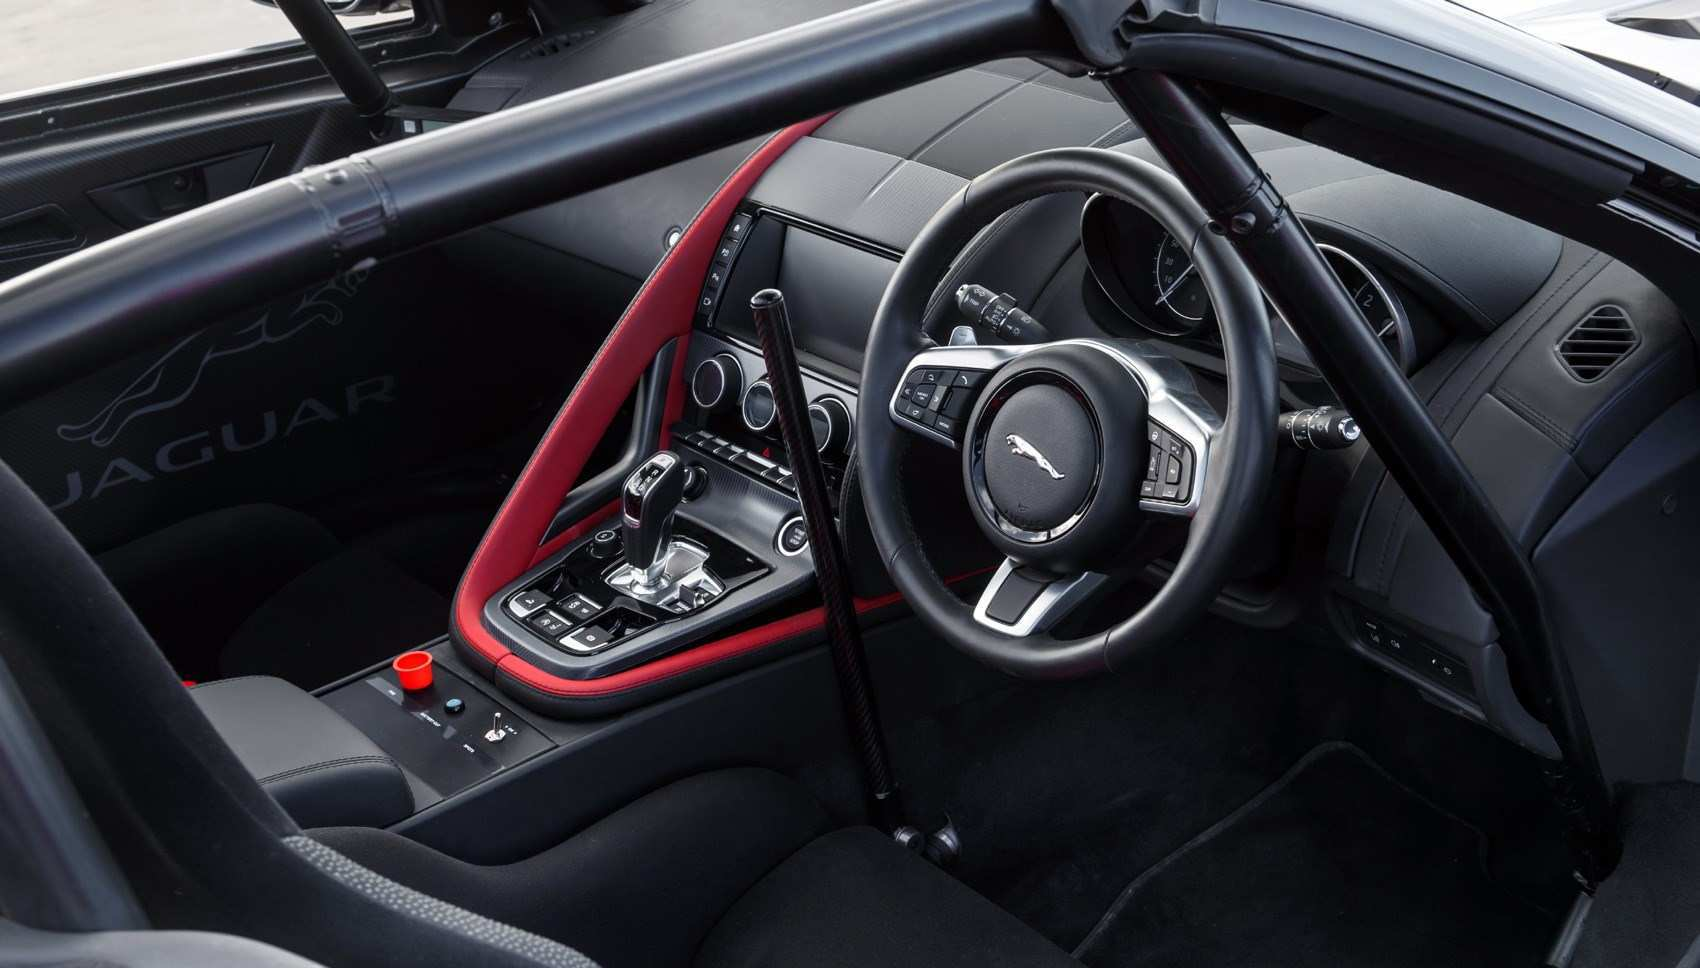 67 The Best Jaguar F Type 2019 Review Pictures